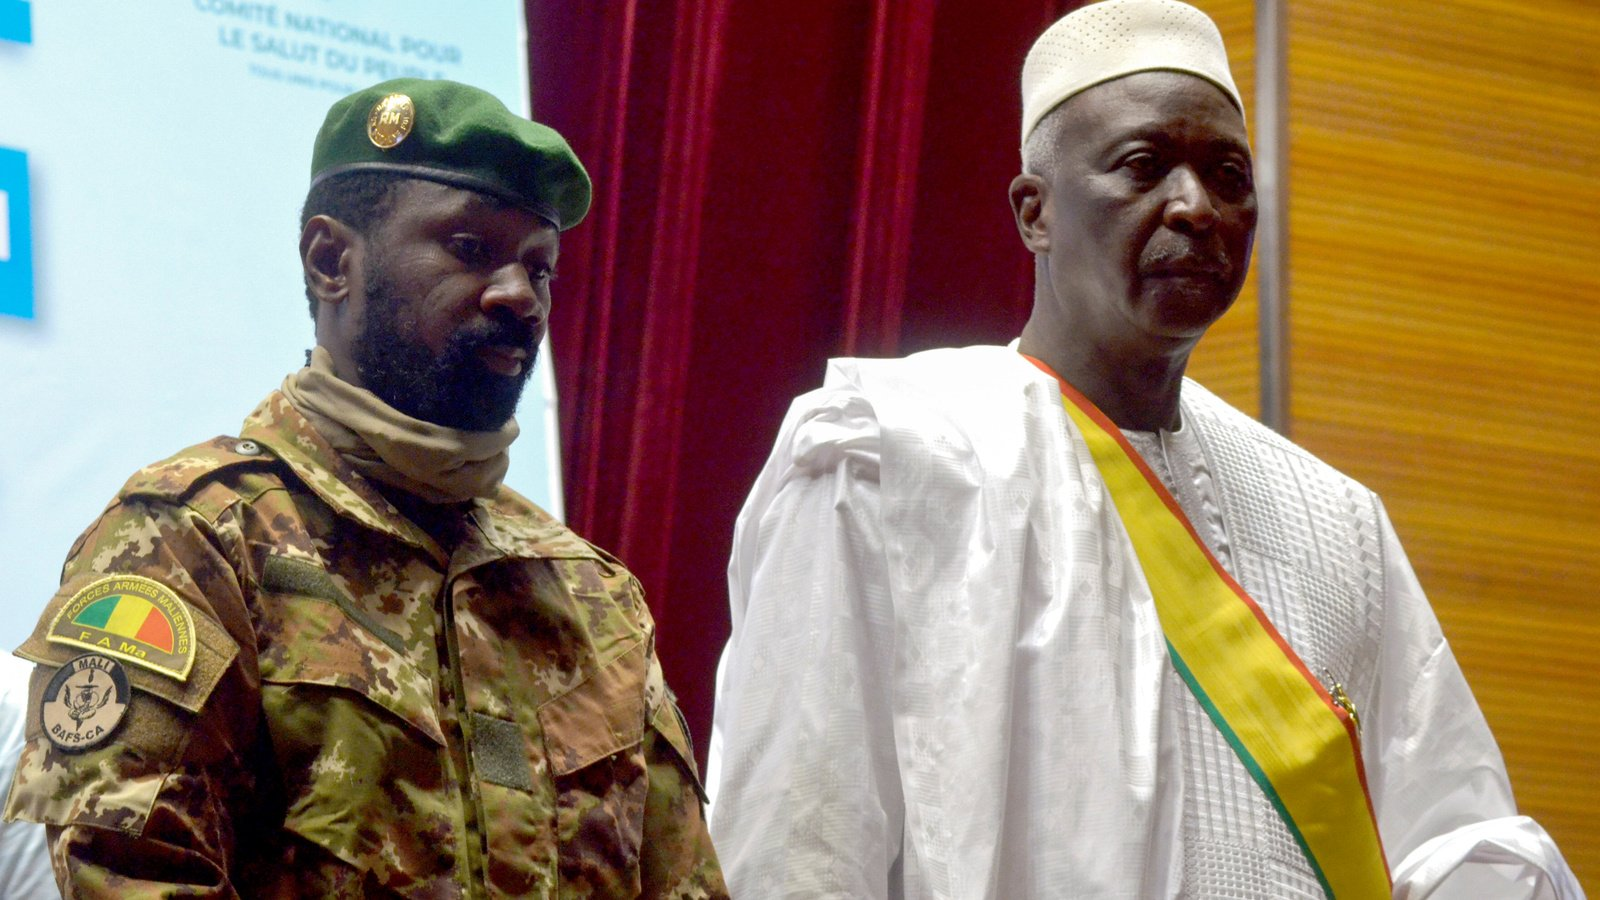 Mali Vice President Confirms Take Over, Fires Detained President